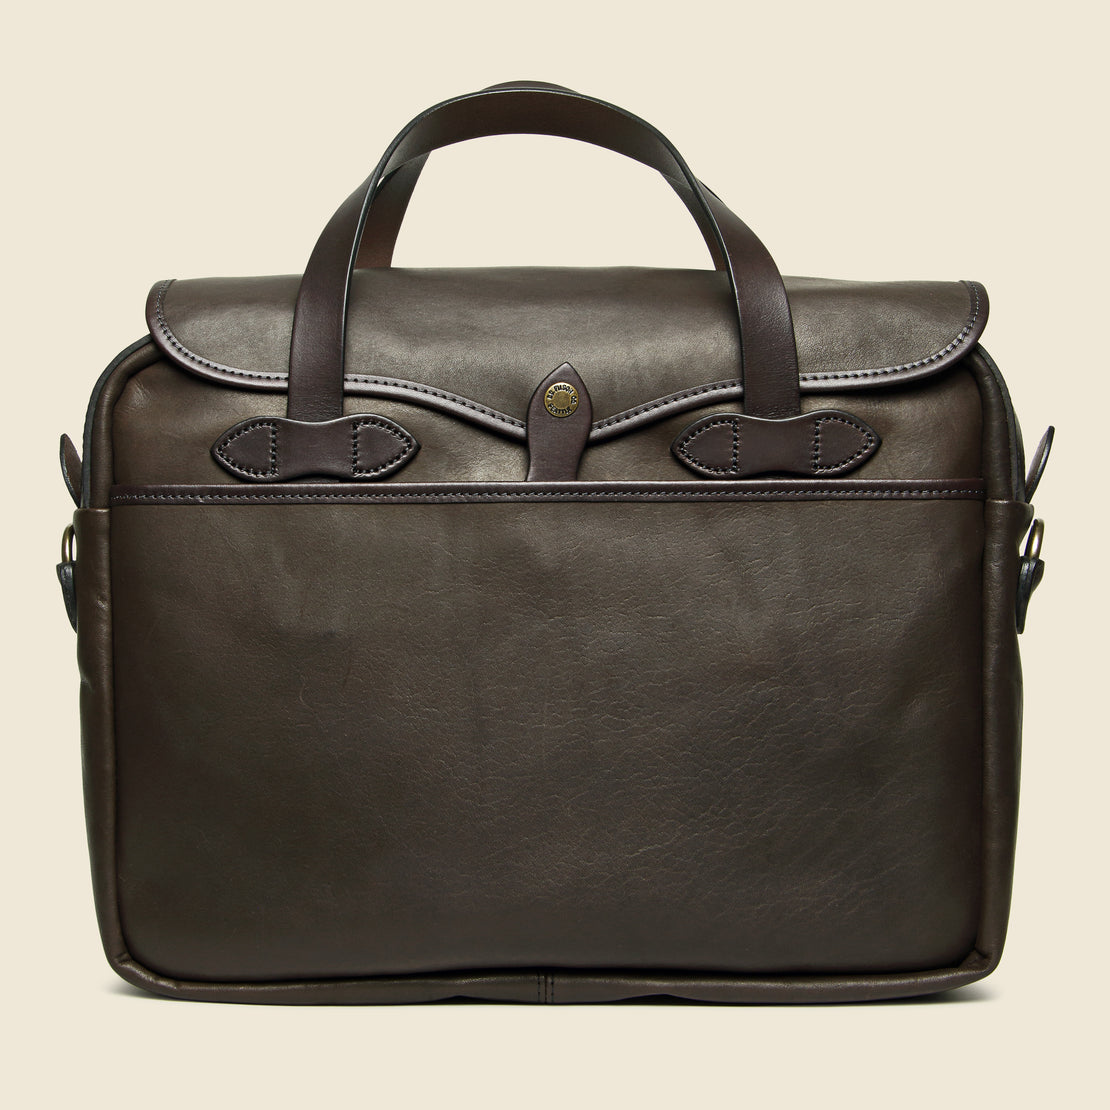 Filson Weatherproof Original Briefcase - Sierra Brown